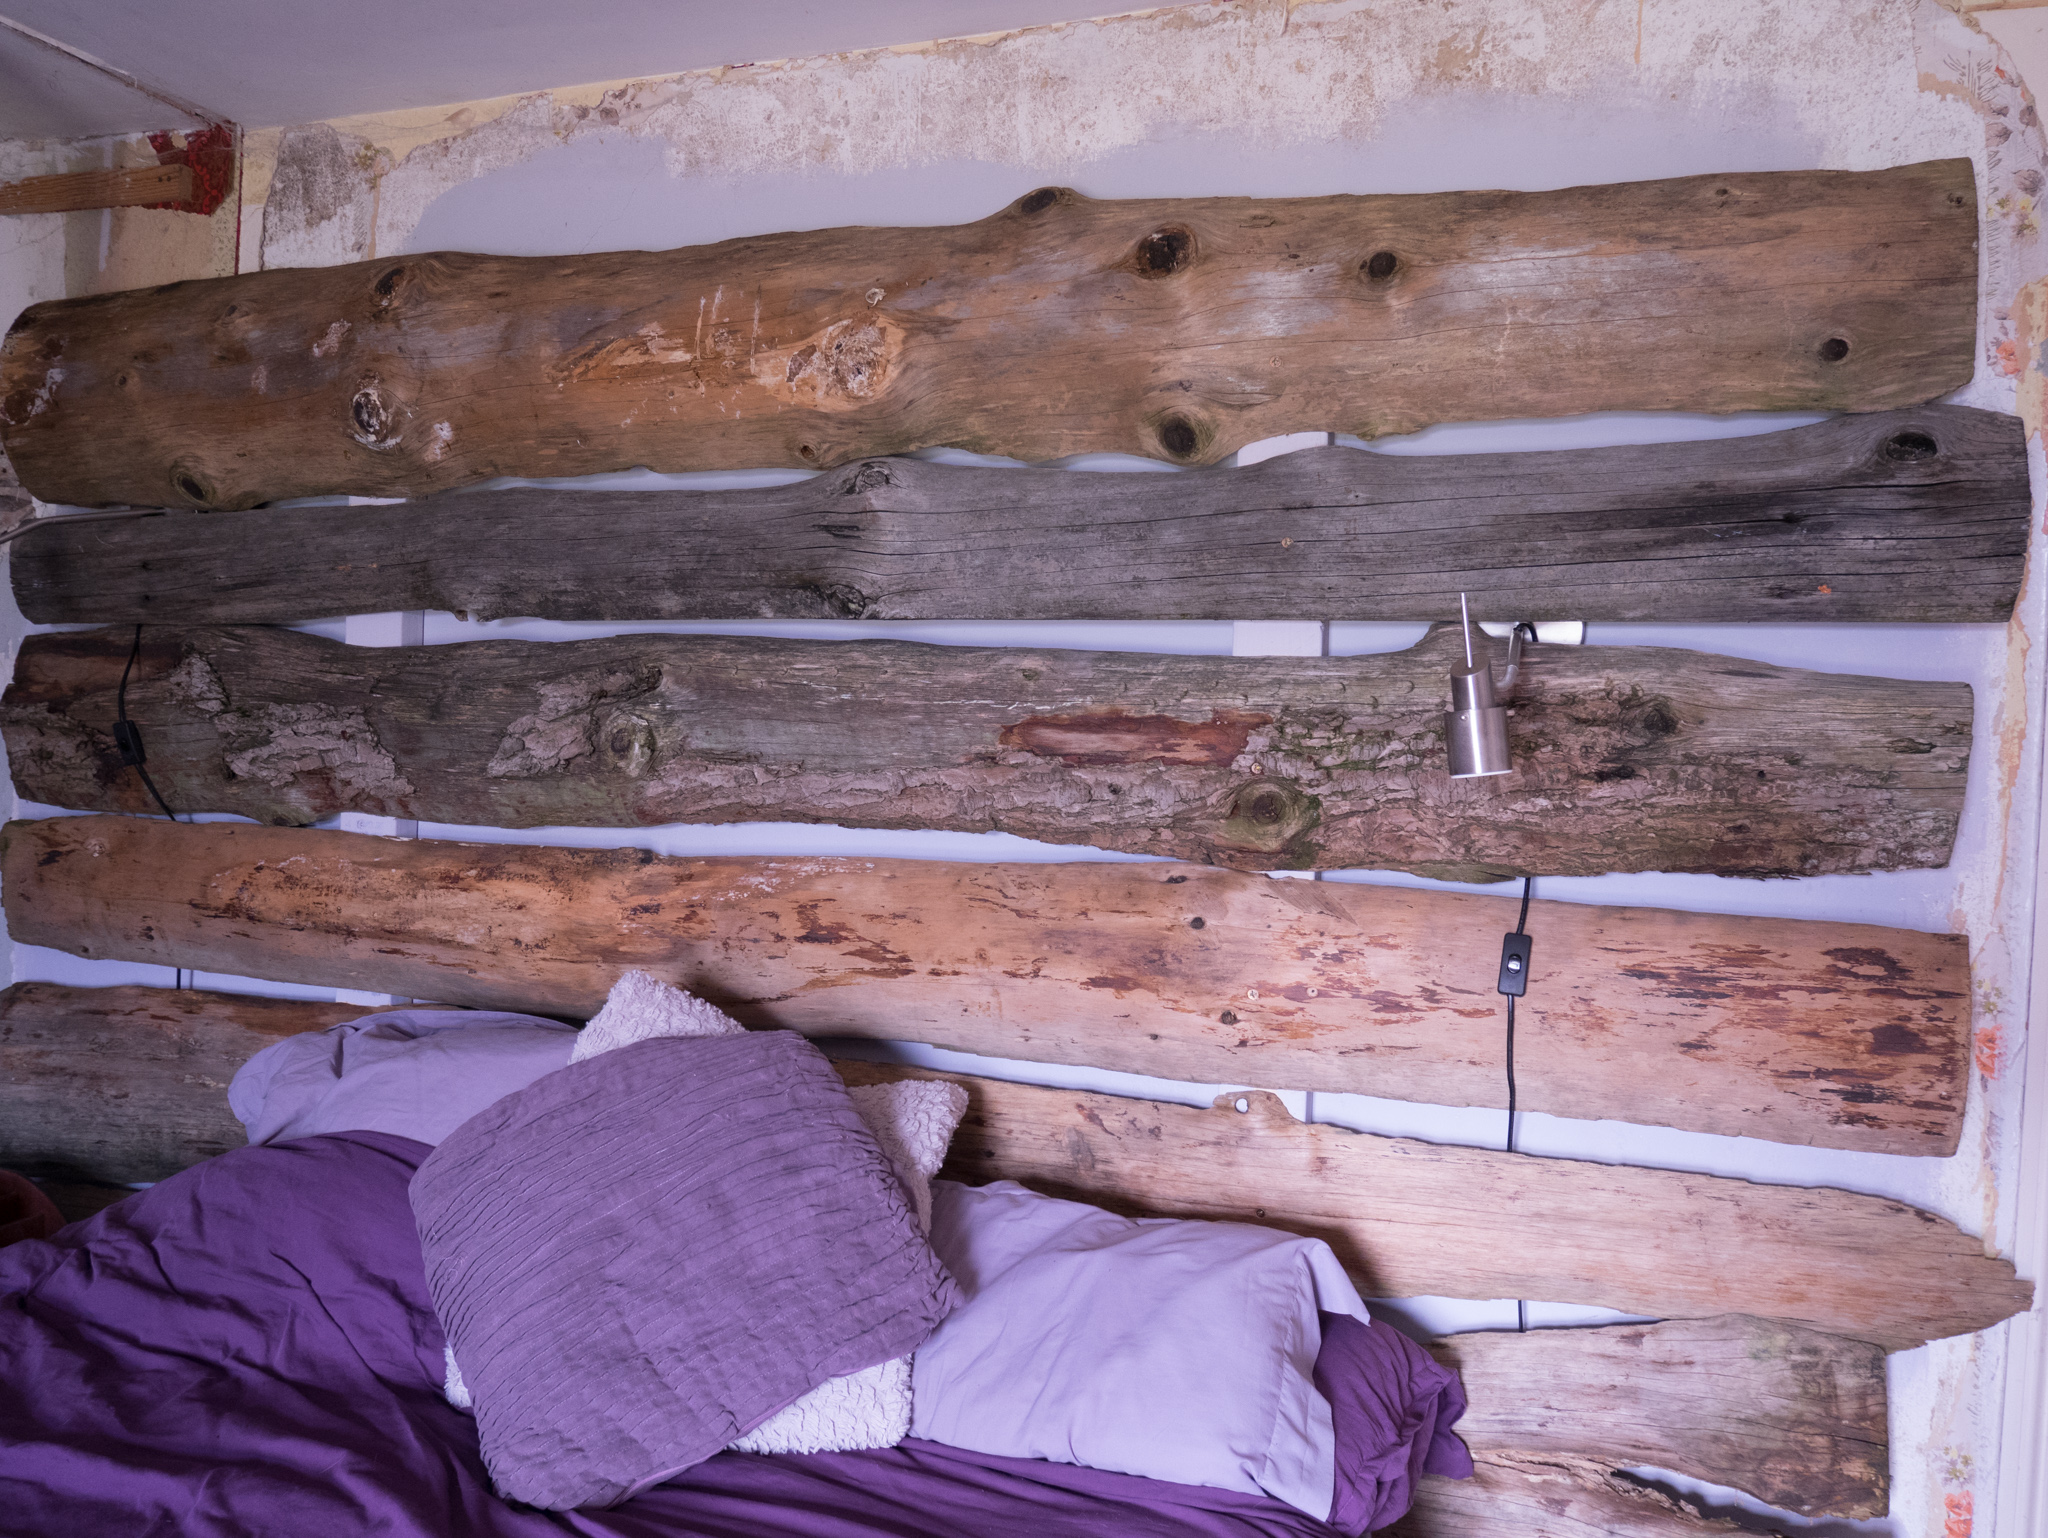 Bedroom renovating part 1 – Making a reclaimed rustic wooden headboard